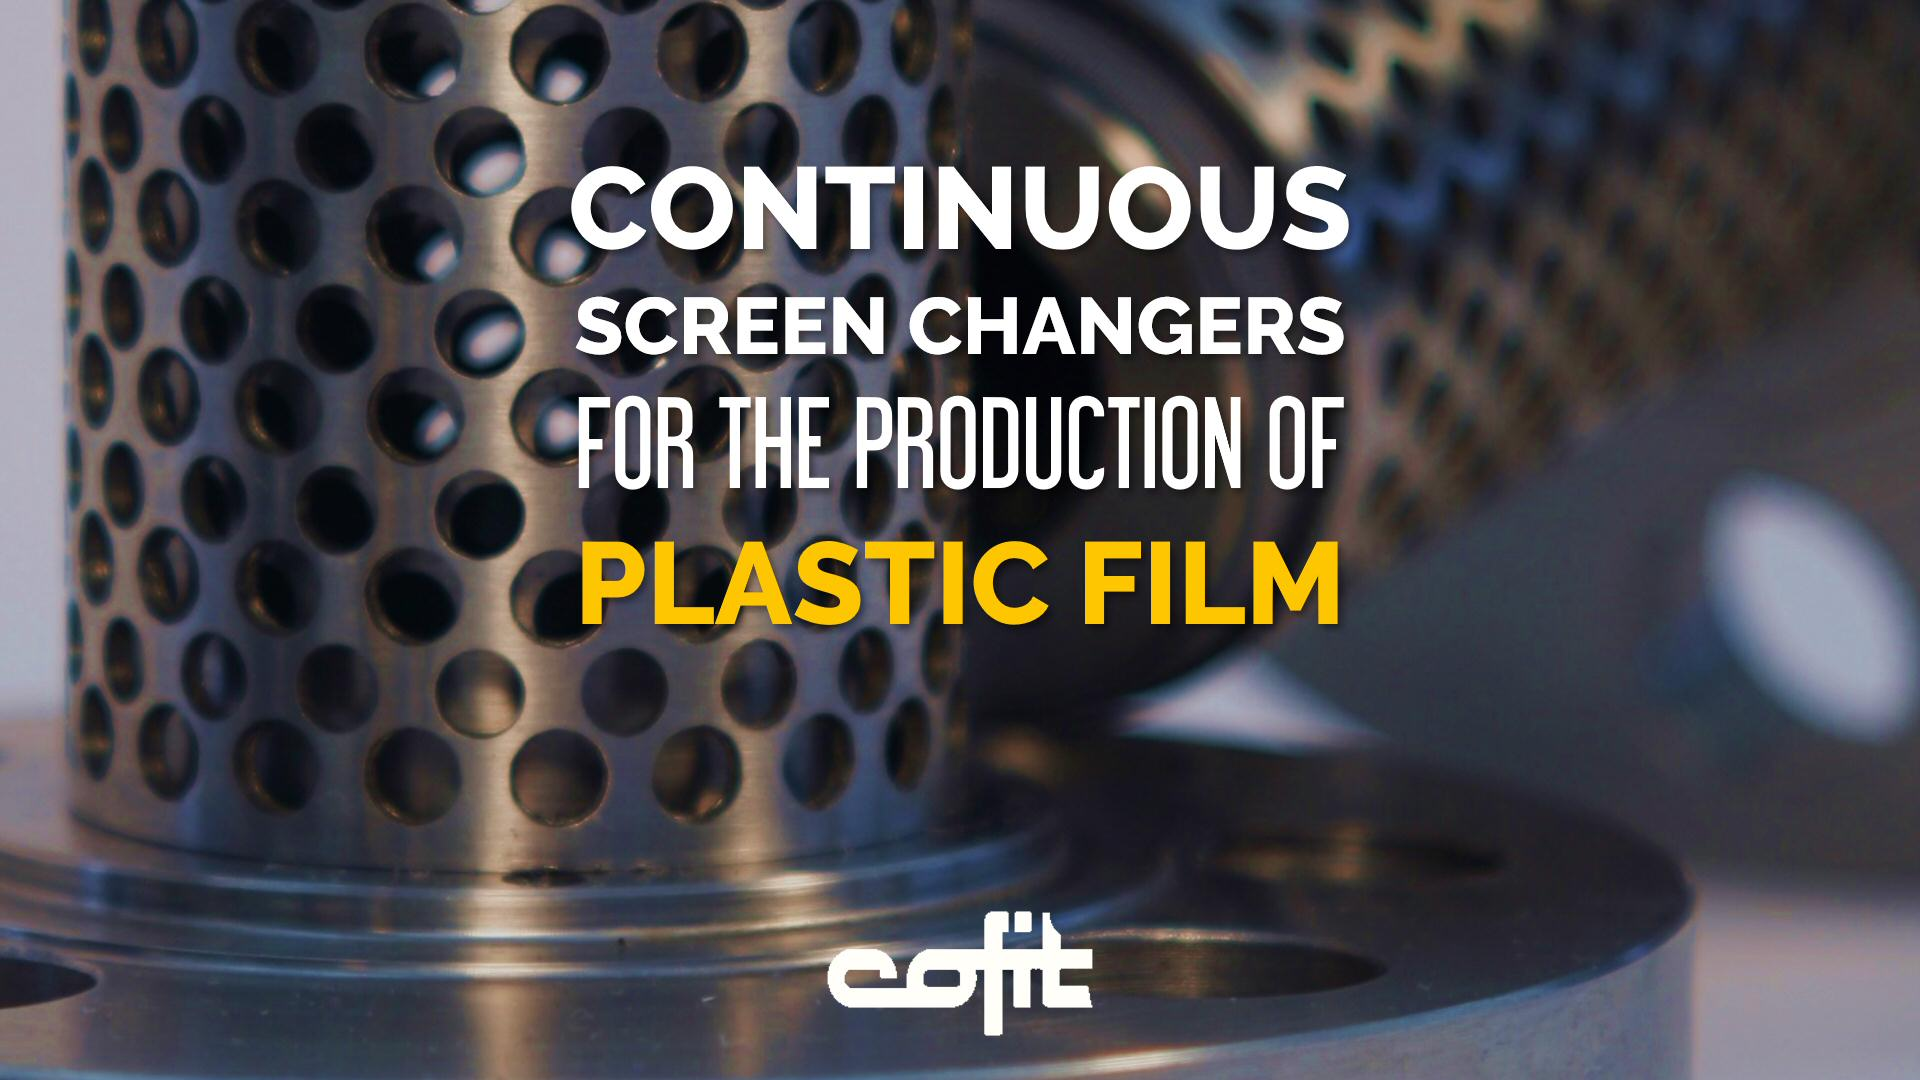 Continuous screen changers for the production of plastic film